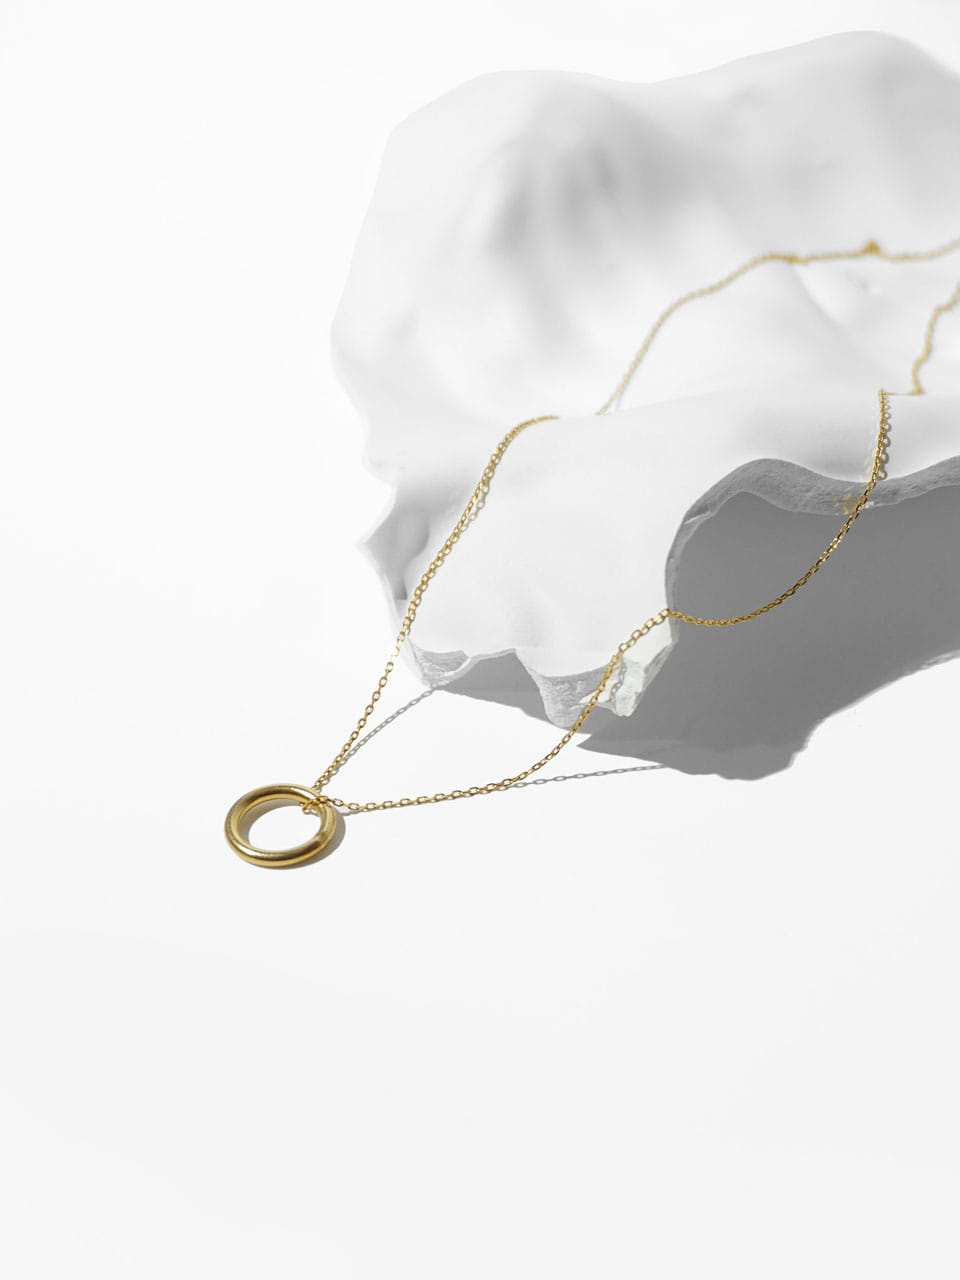 At the moment necklace